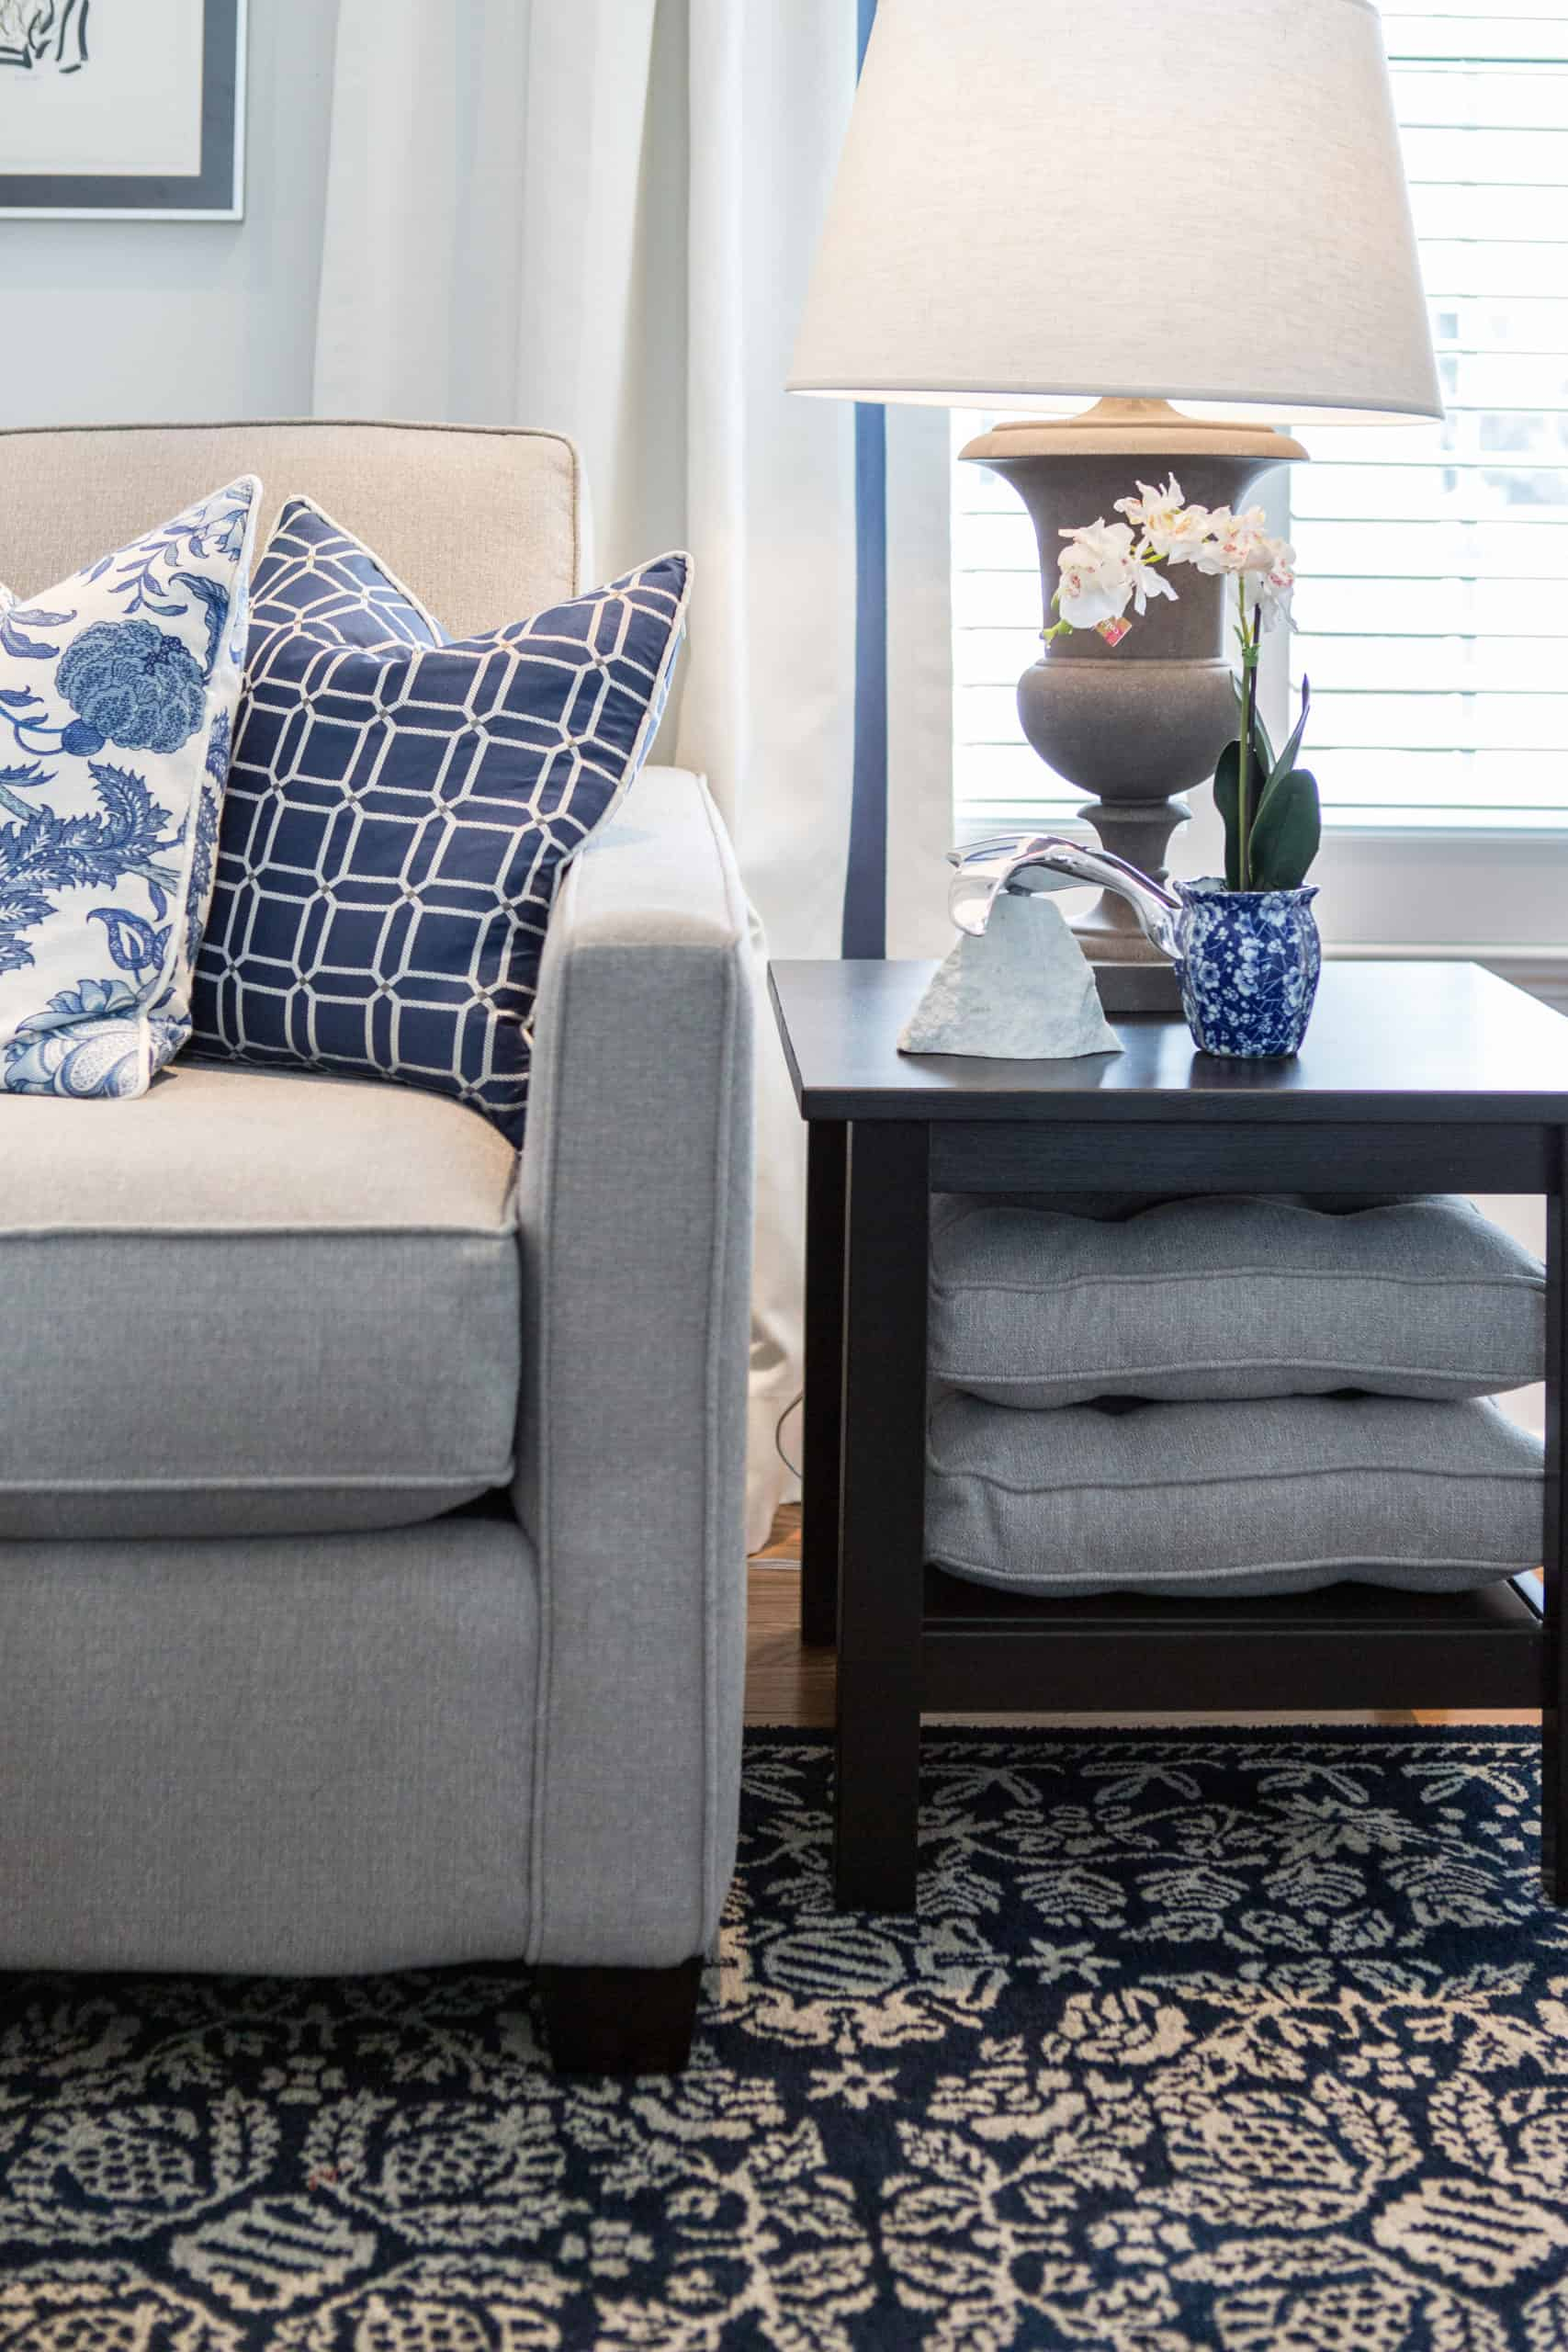 Blue pillows at the end of a white and gray couch